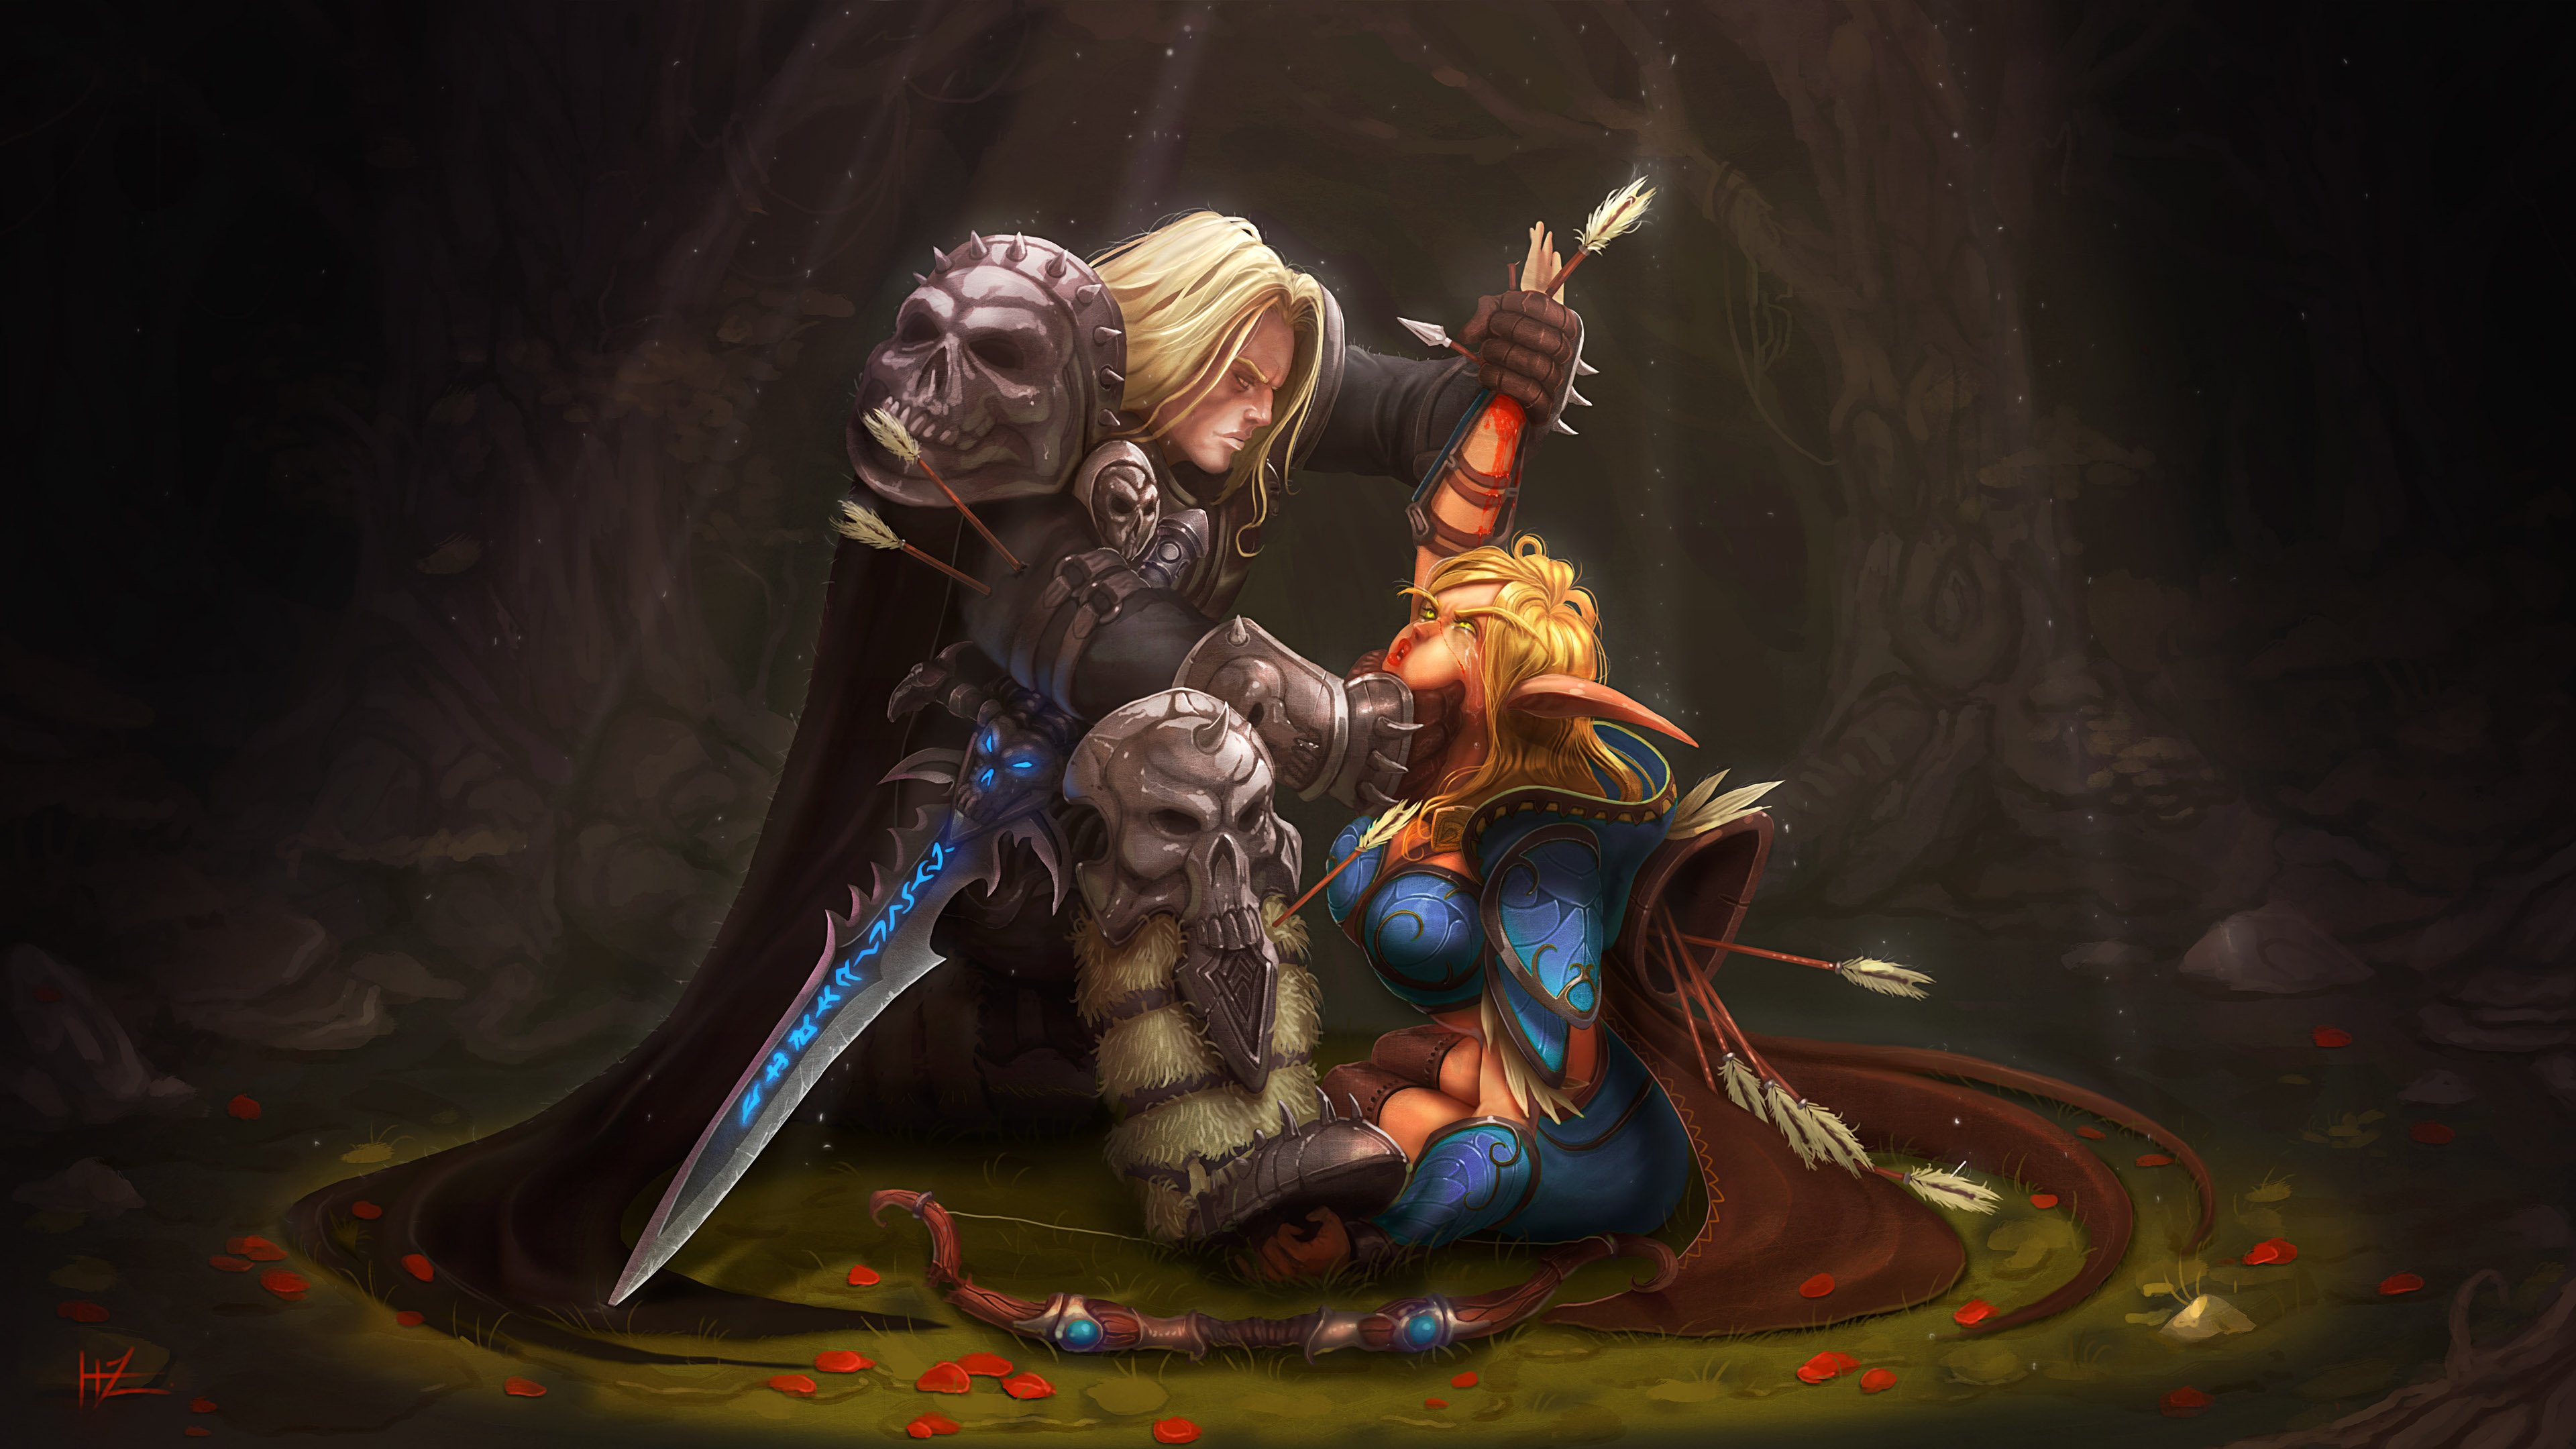 Annoyed By Her Defiance Arthas Would Not Grant The Peace Of Death However But Instead Twisted Elven Spirit Into A Banshee